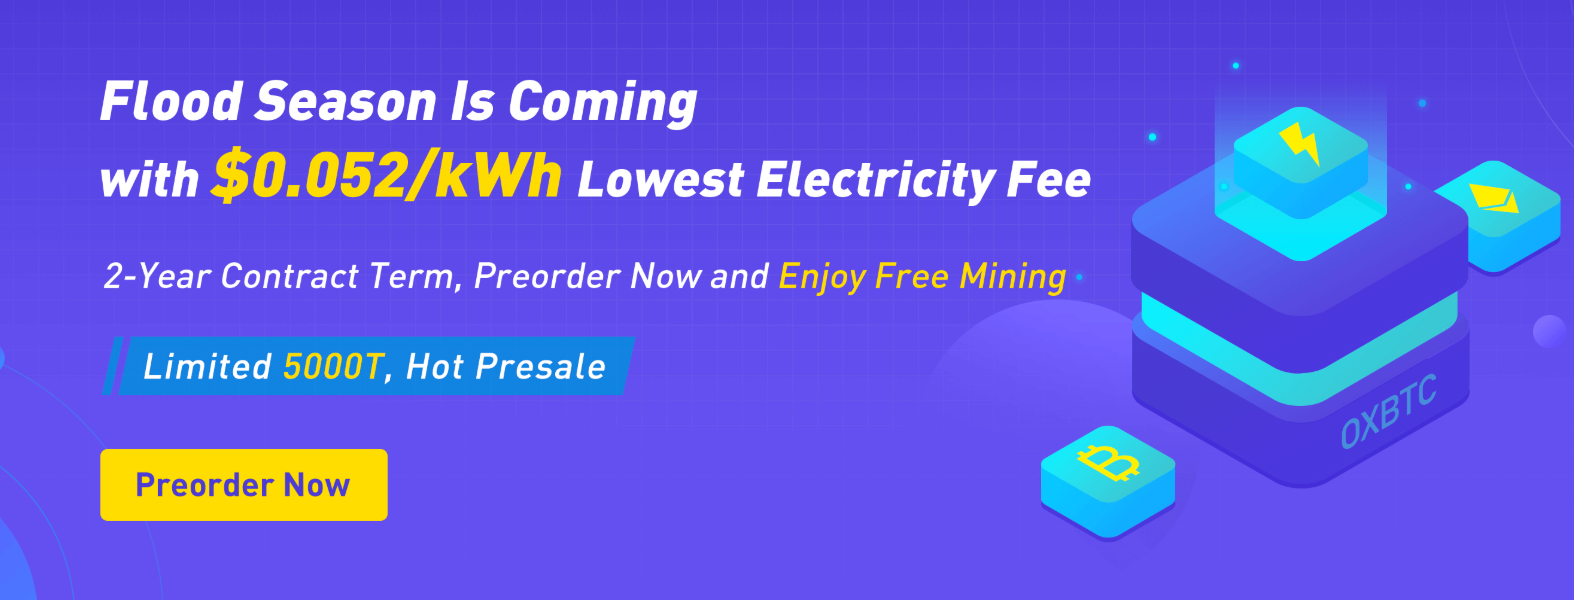 BTC Cloud Mining New Plan with Only $0 052/kWh Electricity Fee and 2